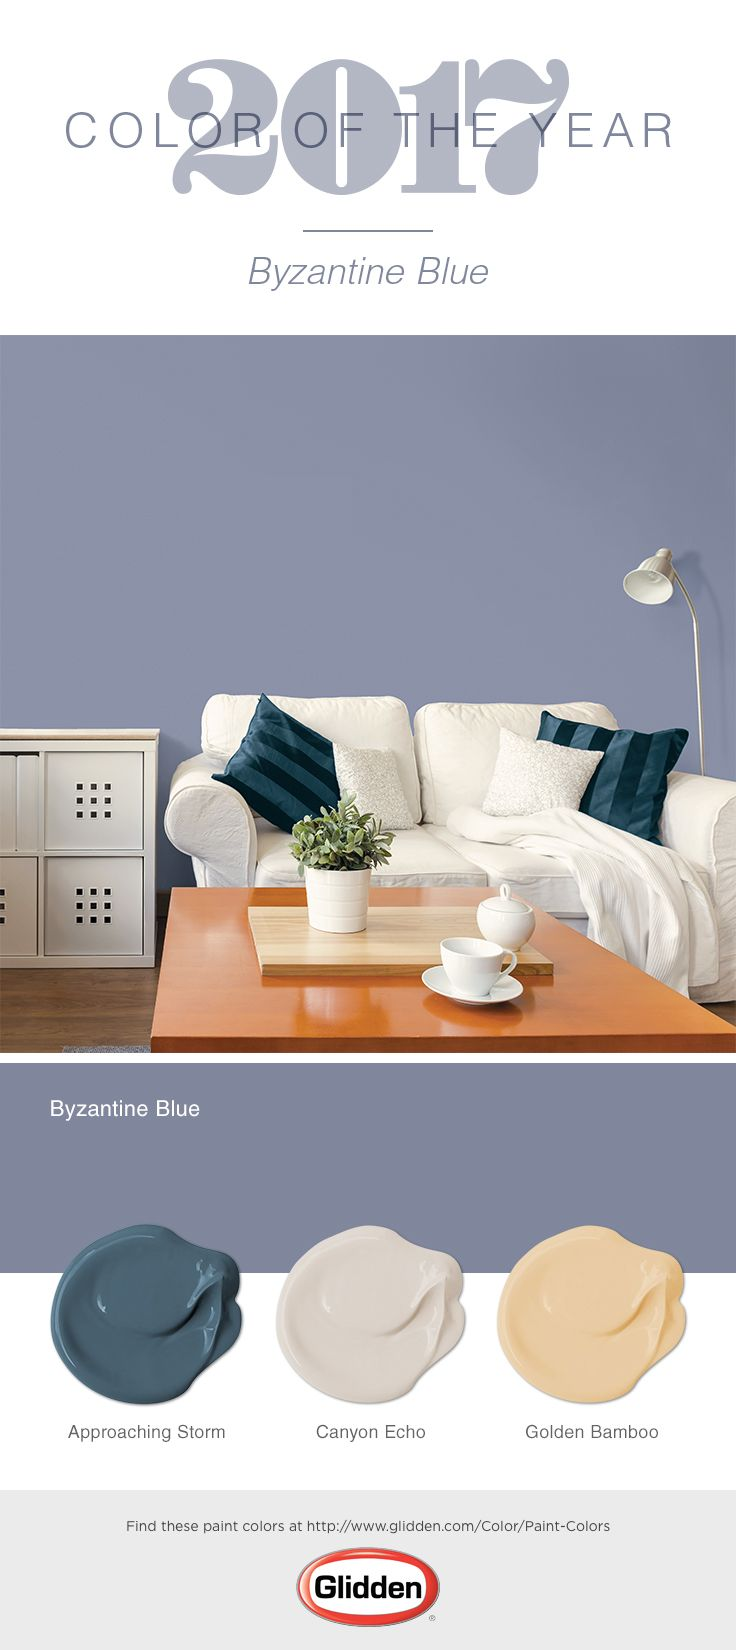 A Playful Yet Peaceful Purple Byzantine Blue Is The Glidden 2017 Color Of Year For Traditional Style E Use This Bluish Paint